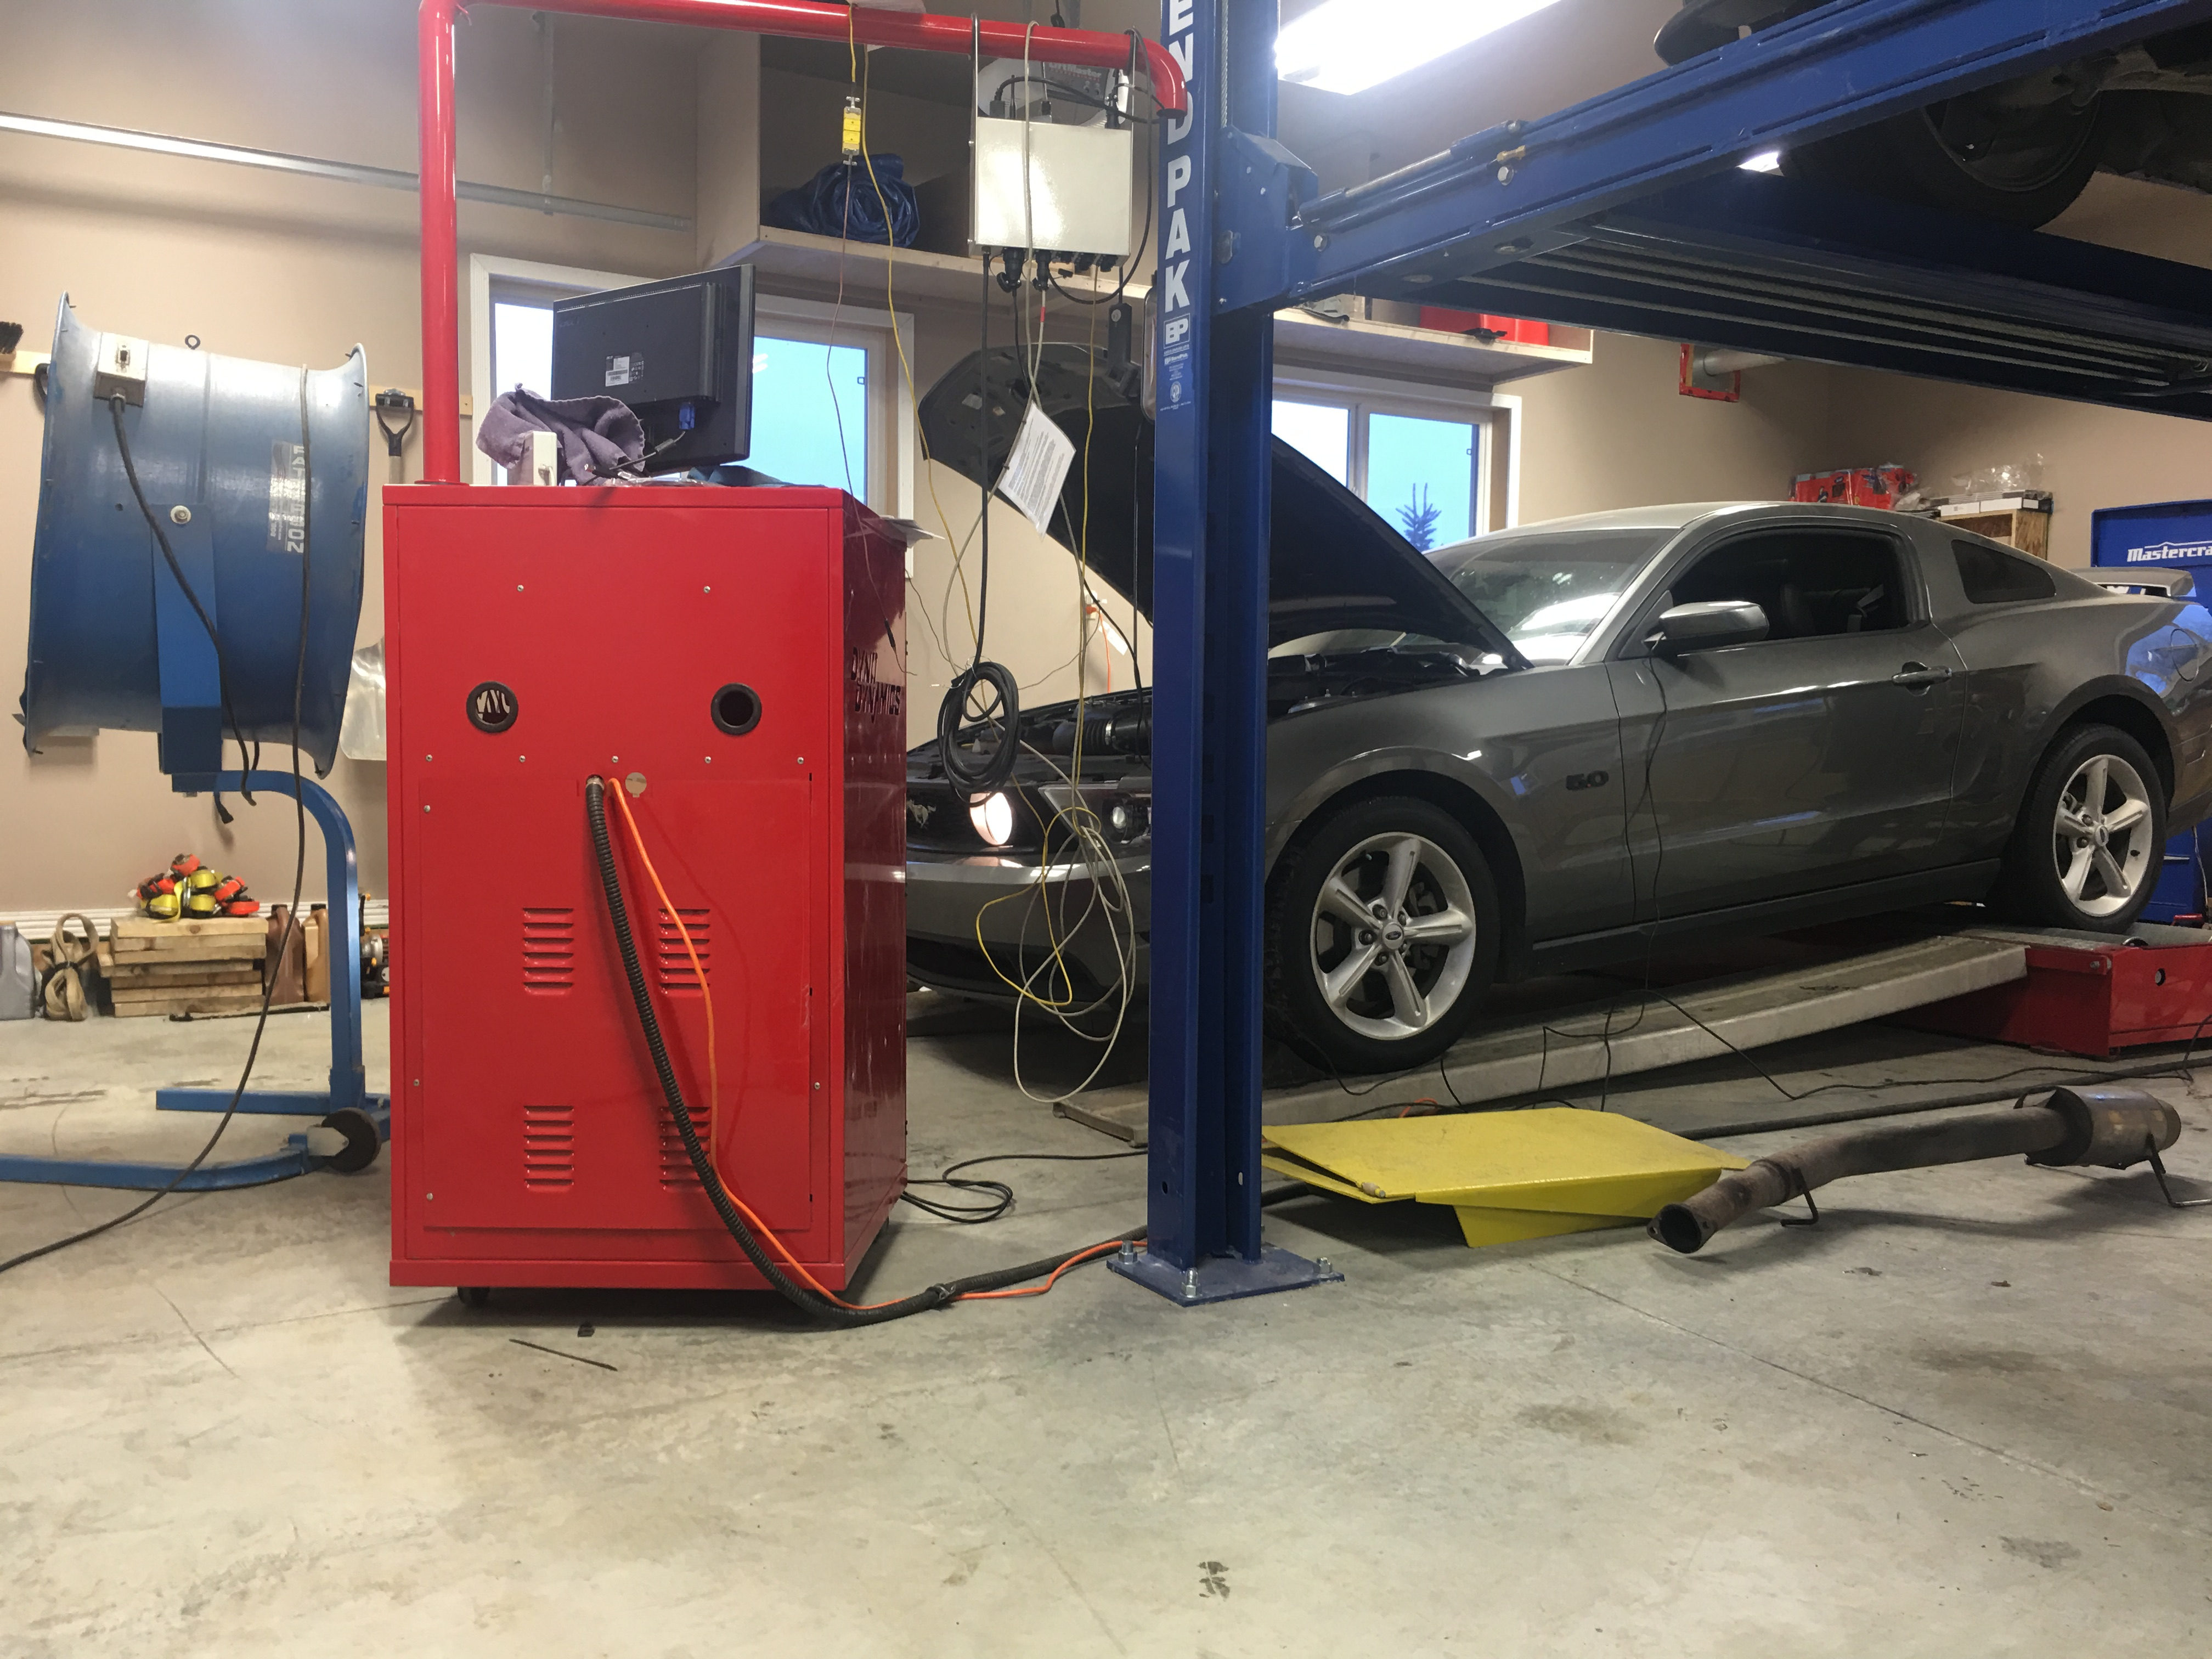 Some more Dyno tuning pictures!